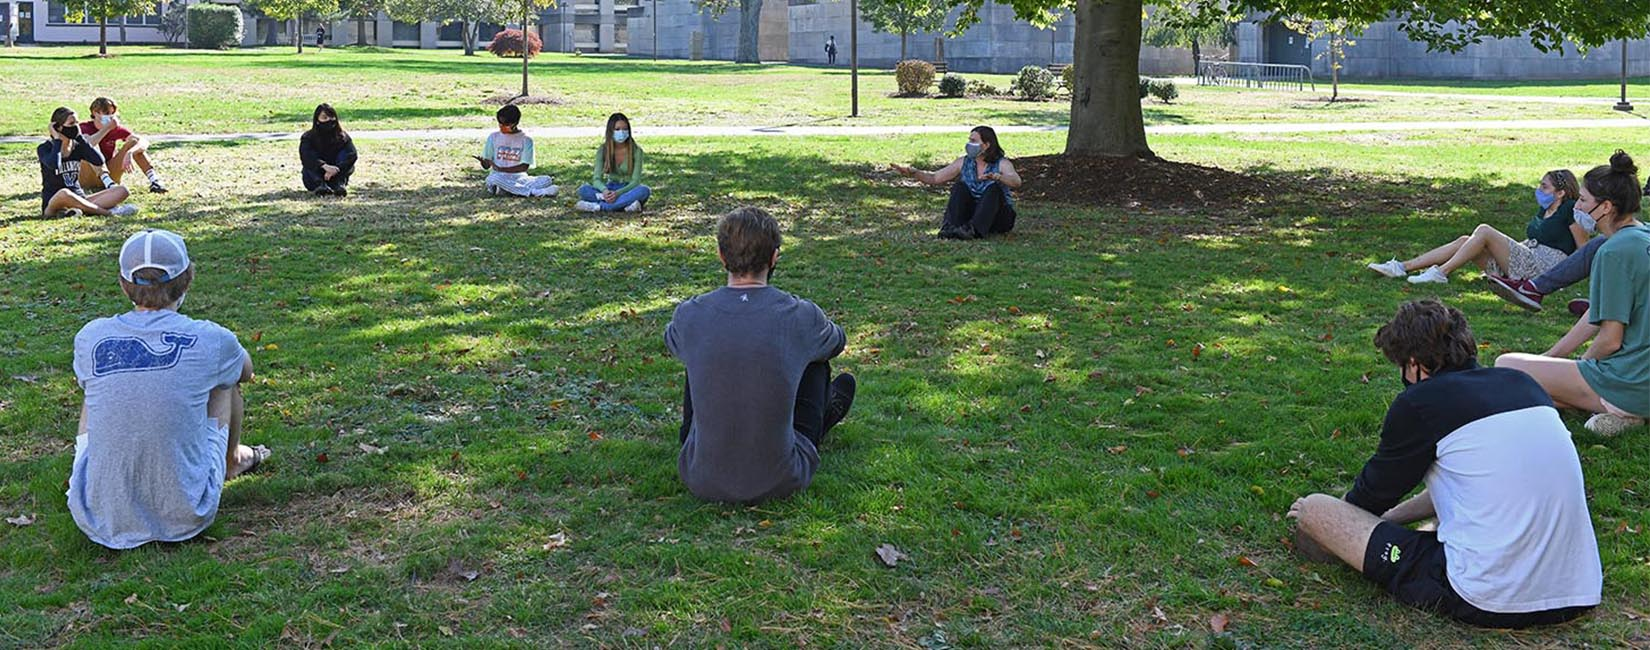 Wesleyan University Students in outdoor classrom.